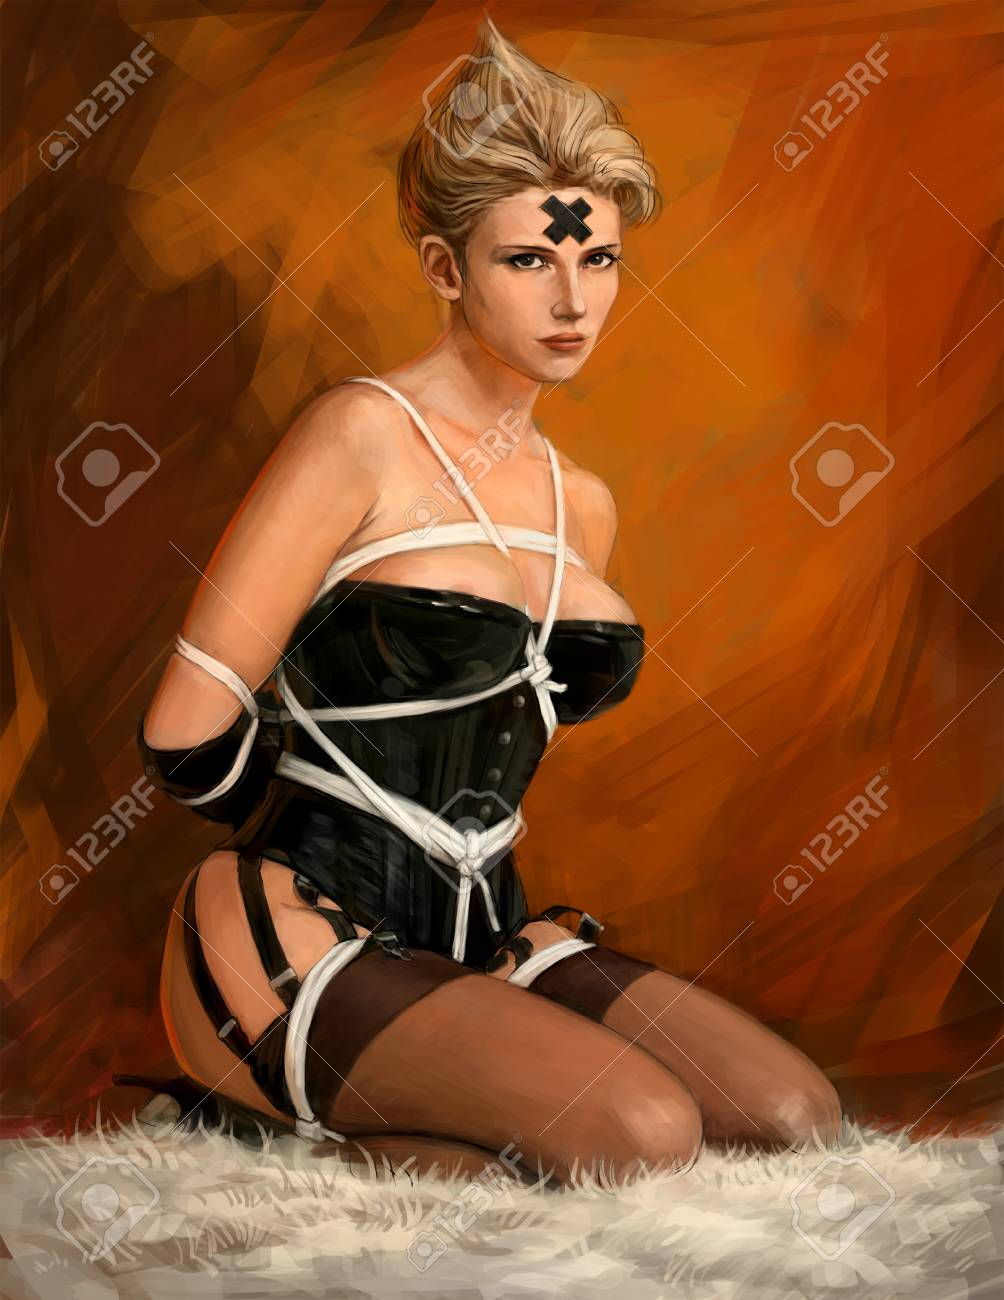 Related Sexy girl in latex and stockings. Picture of a hot girl for a poster